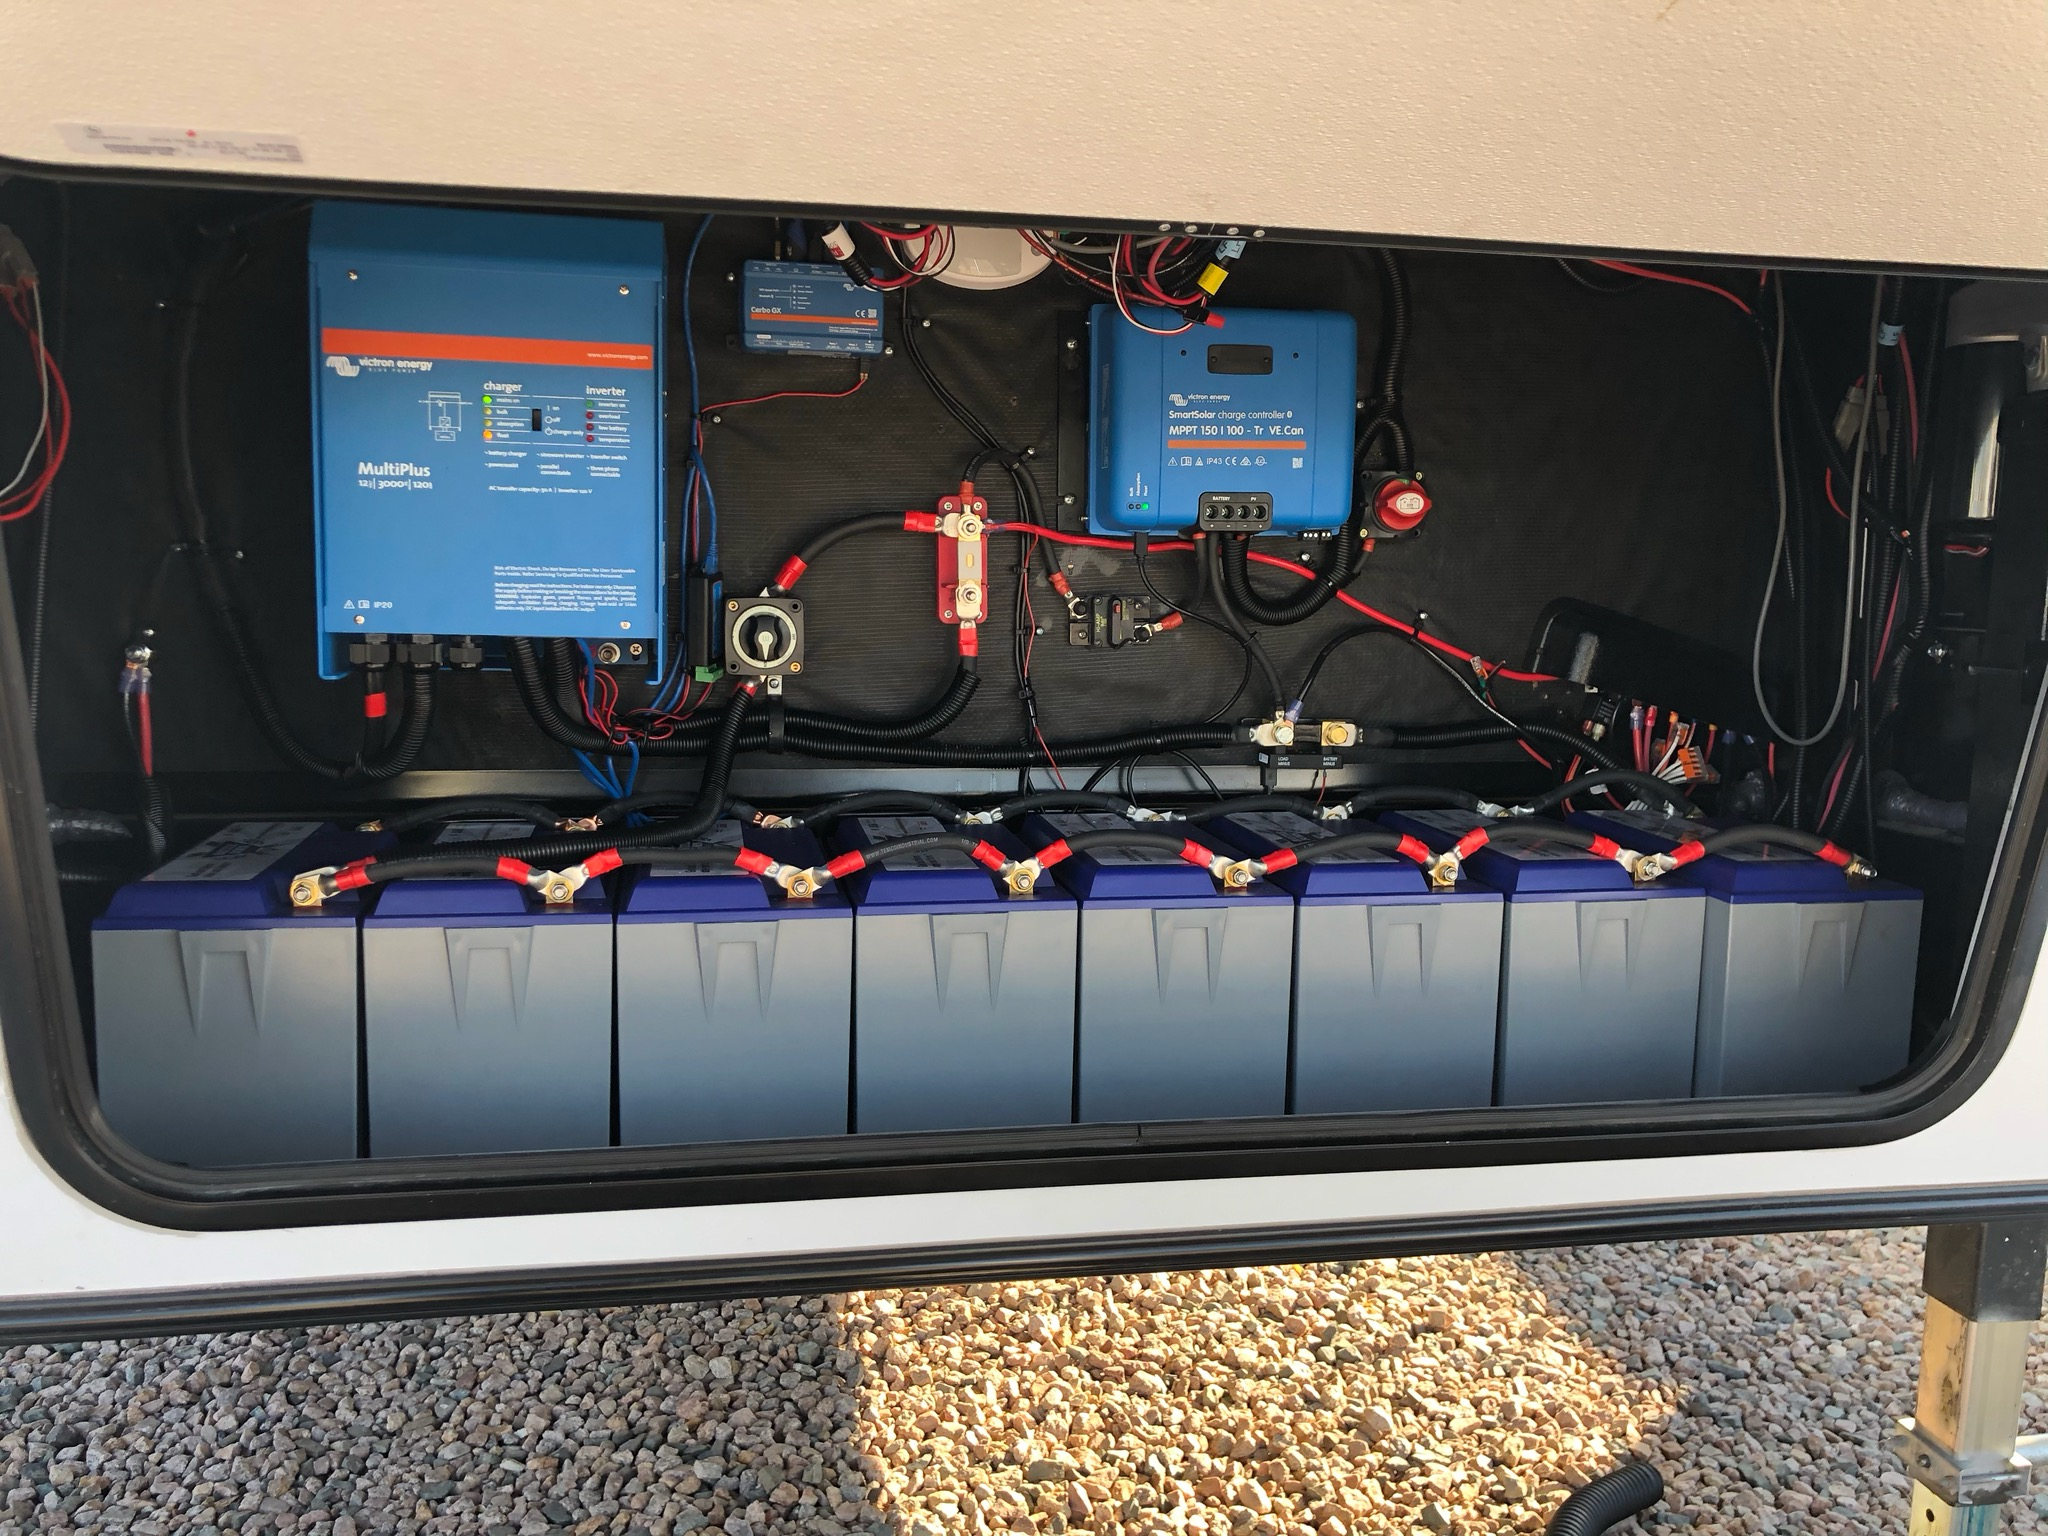 Battle Born installation with Victron controller and Inverter